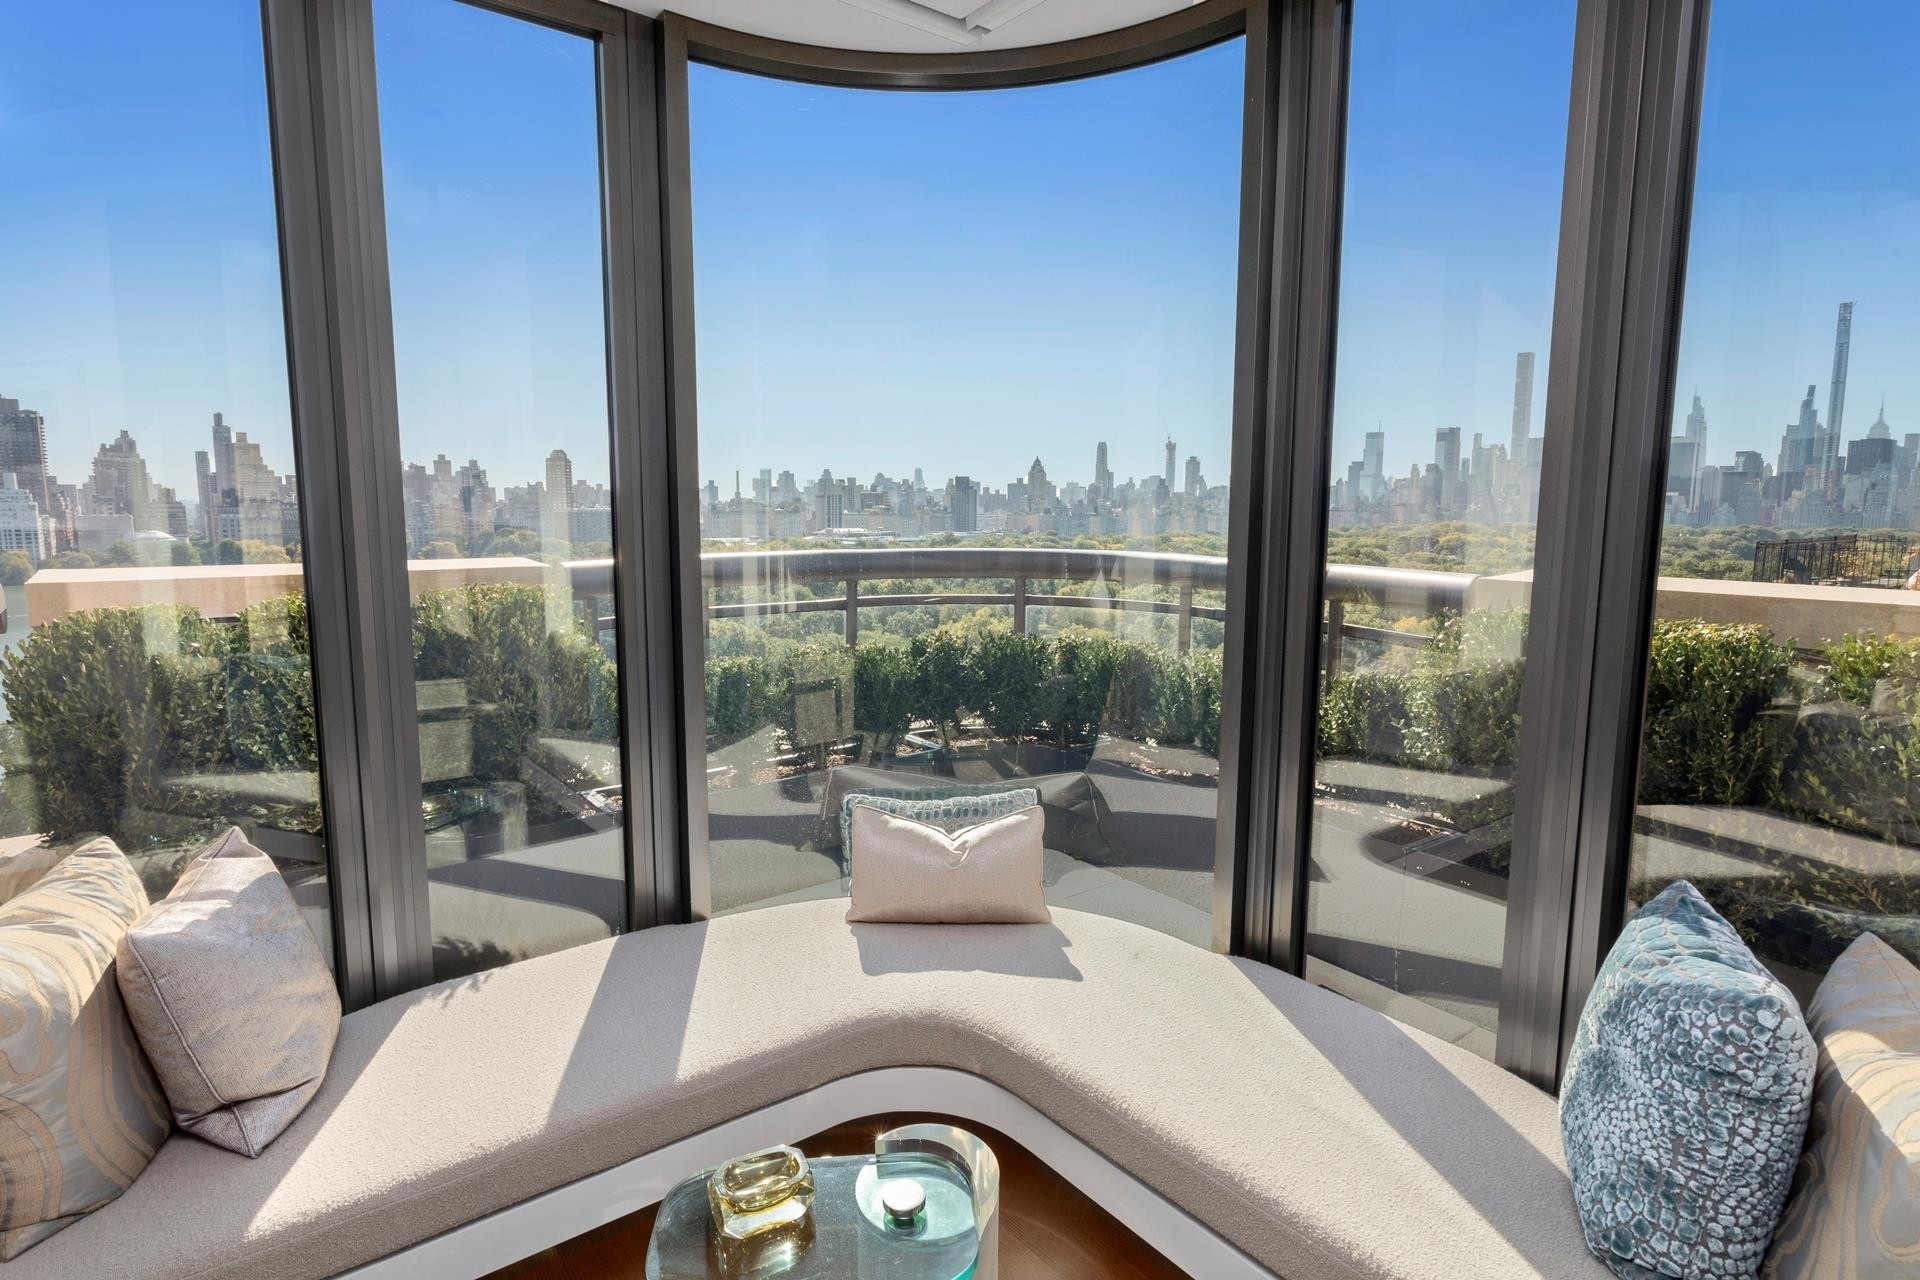 6. Condominiums for Sale at 279 CPW, 279 Central Park West, PHBA Upper West Side, New York, NY 10024